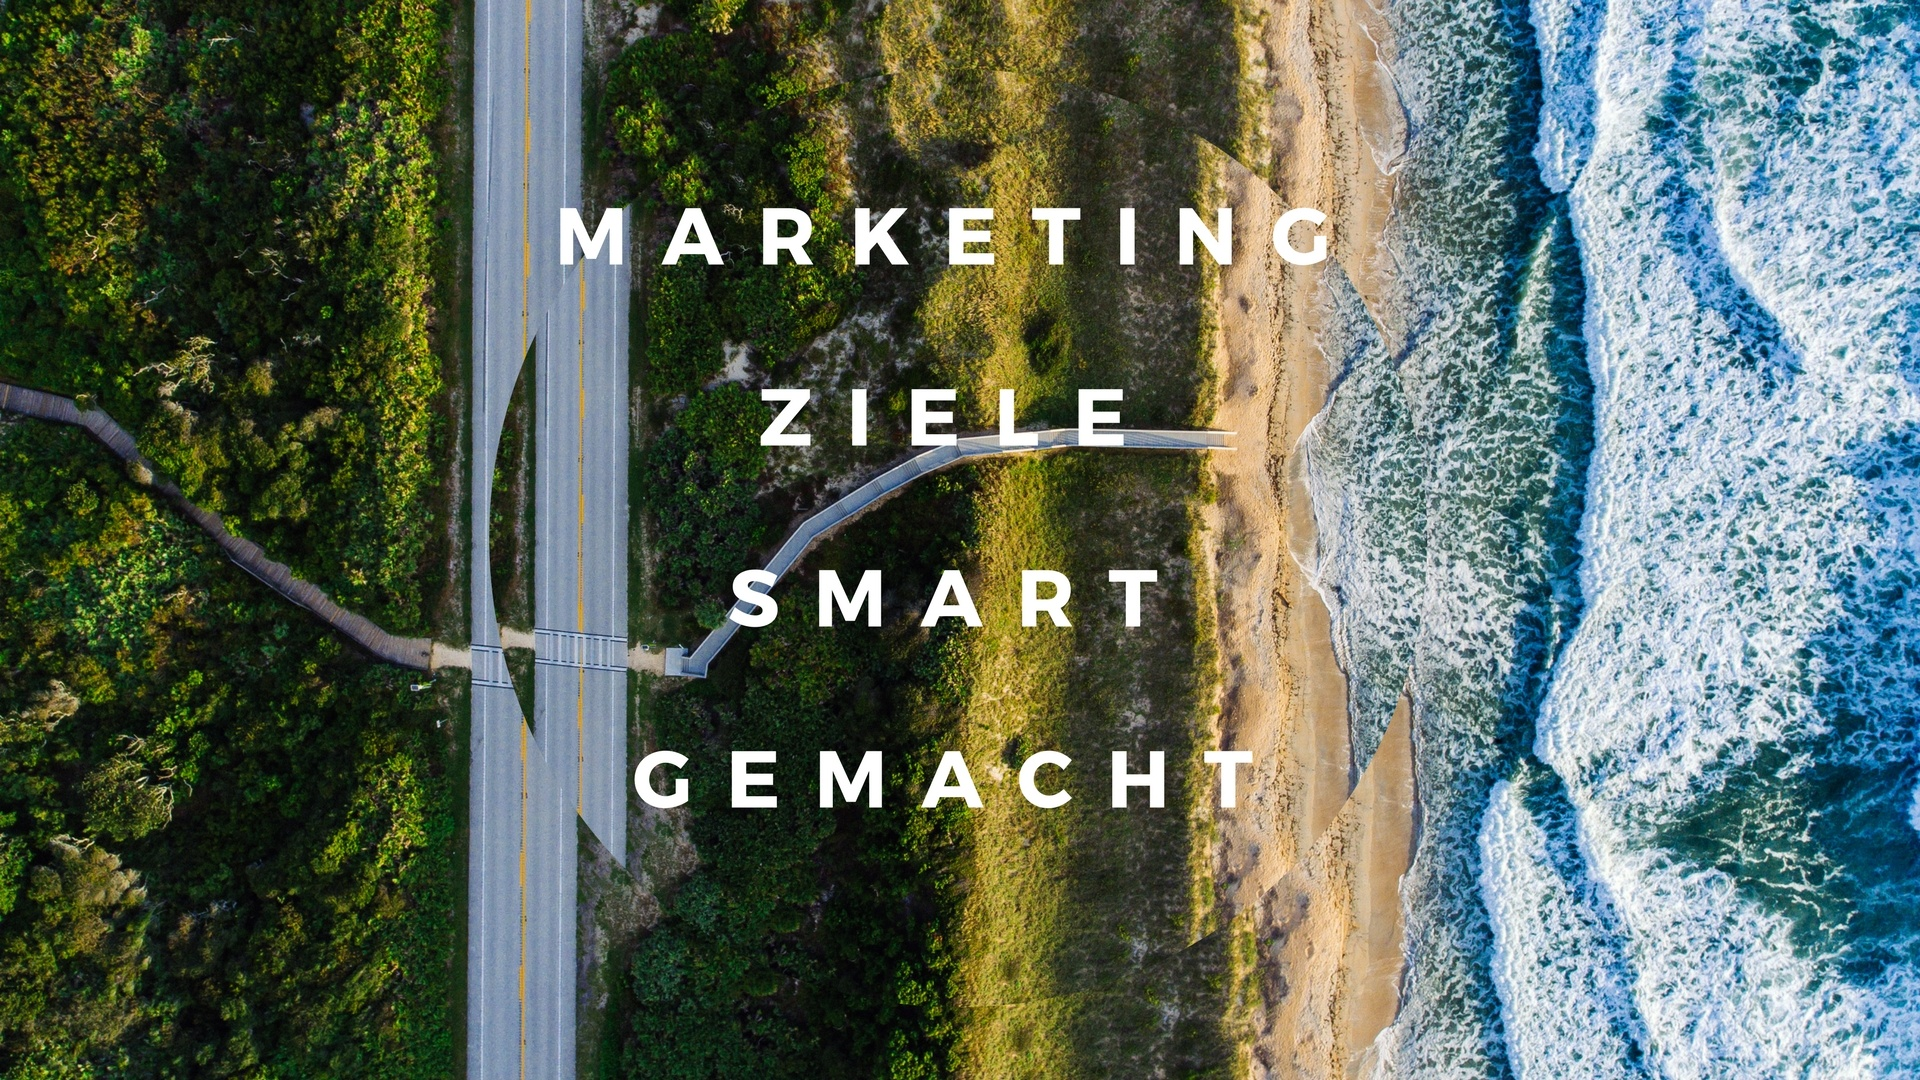 Marketing Ziele Smart